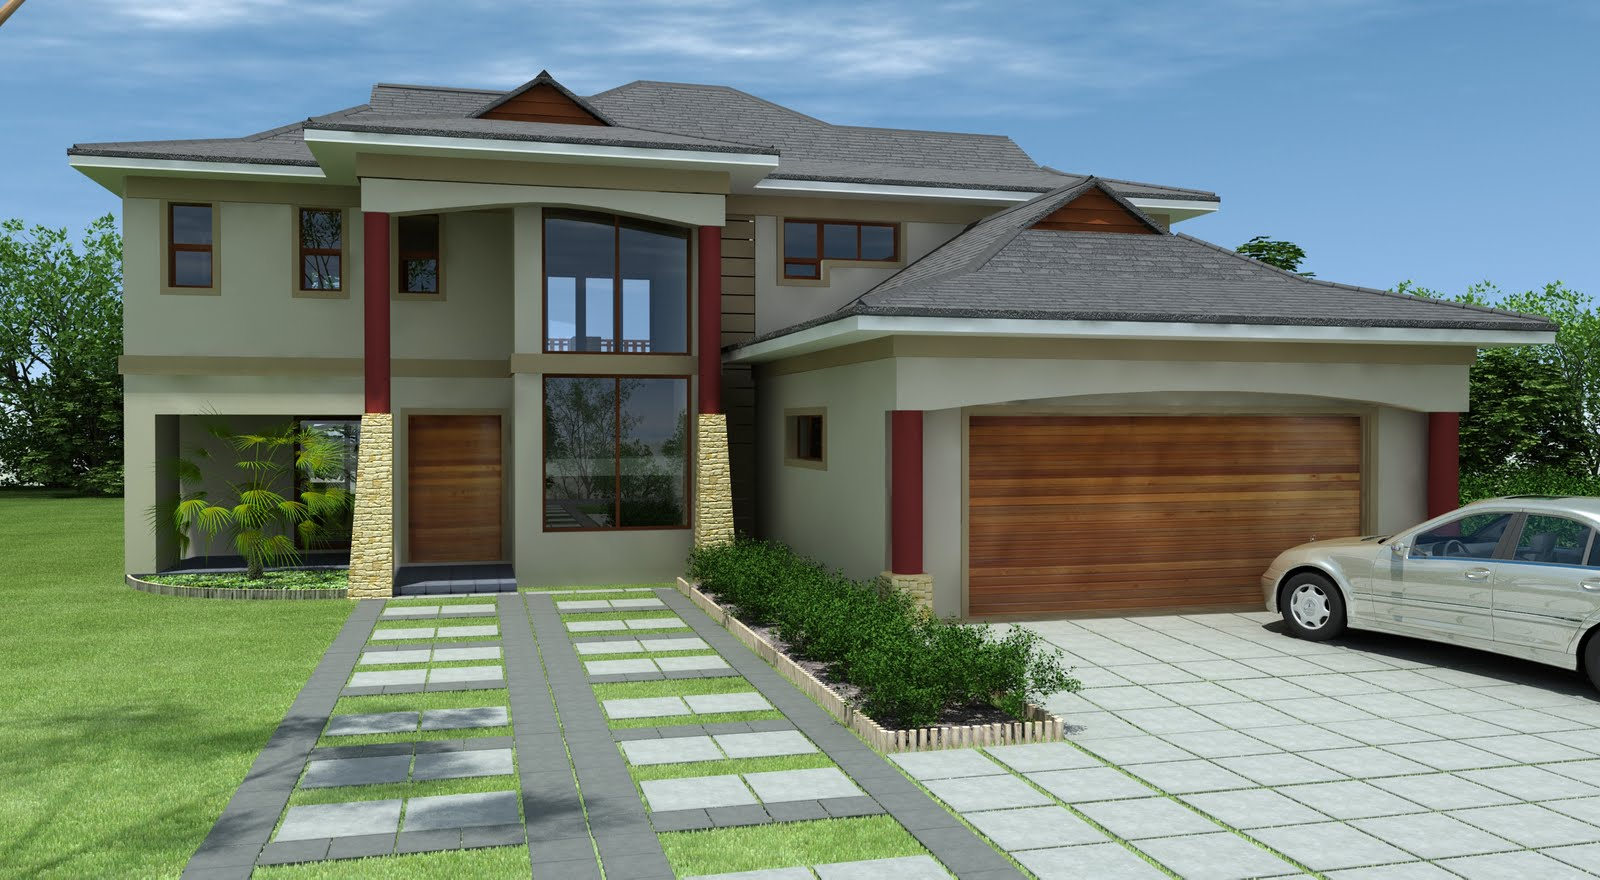 Estate house plans in south africa house design plans Estate home designs